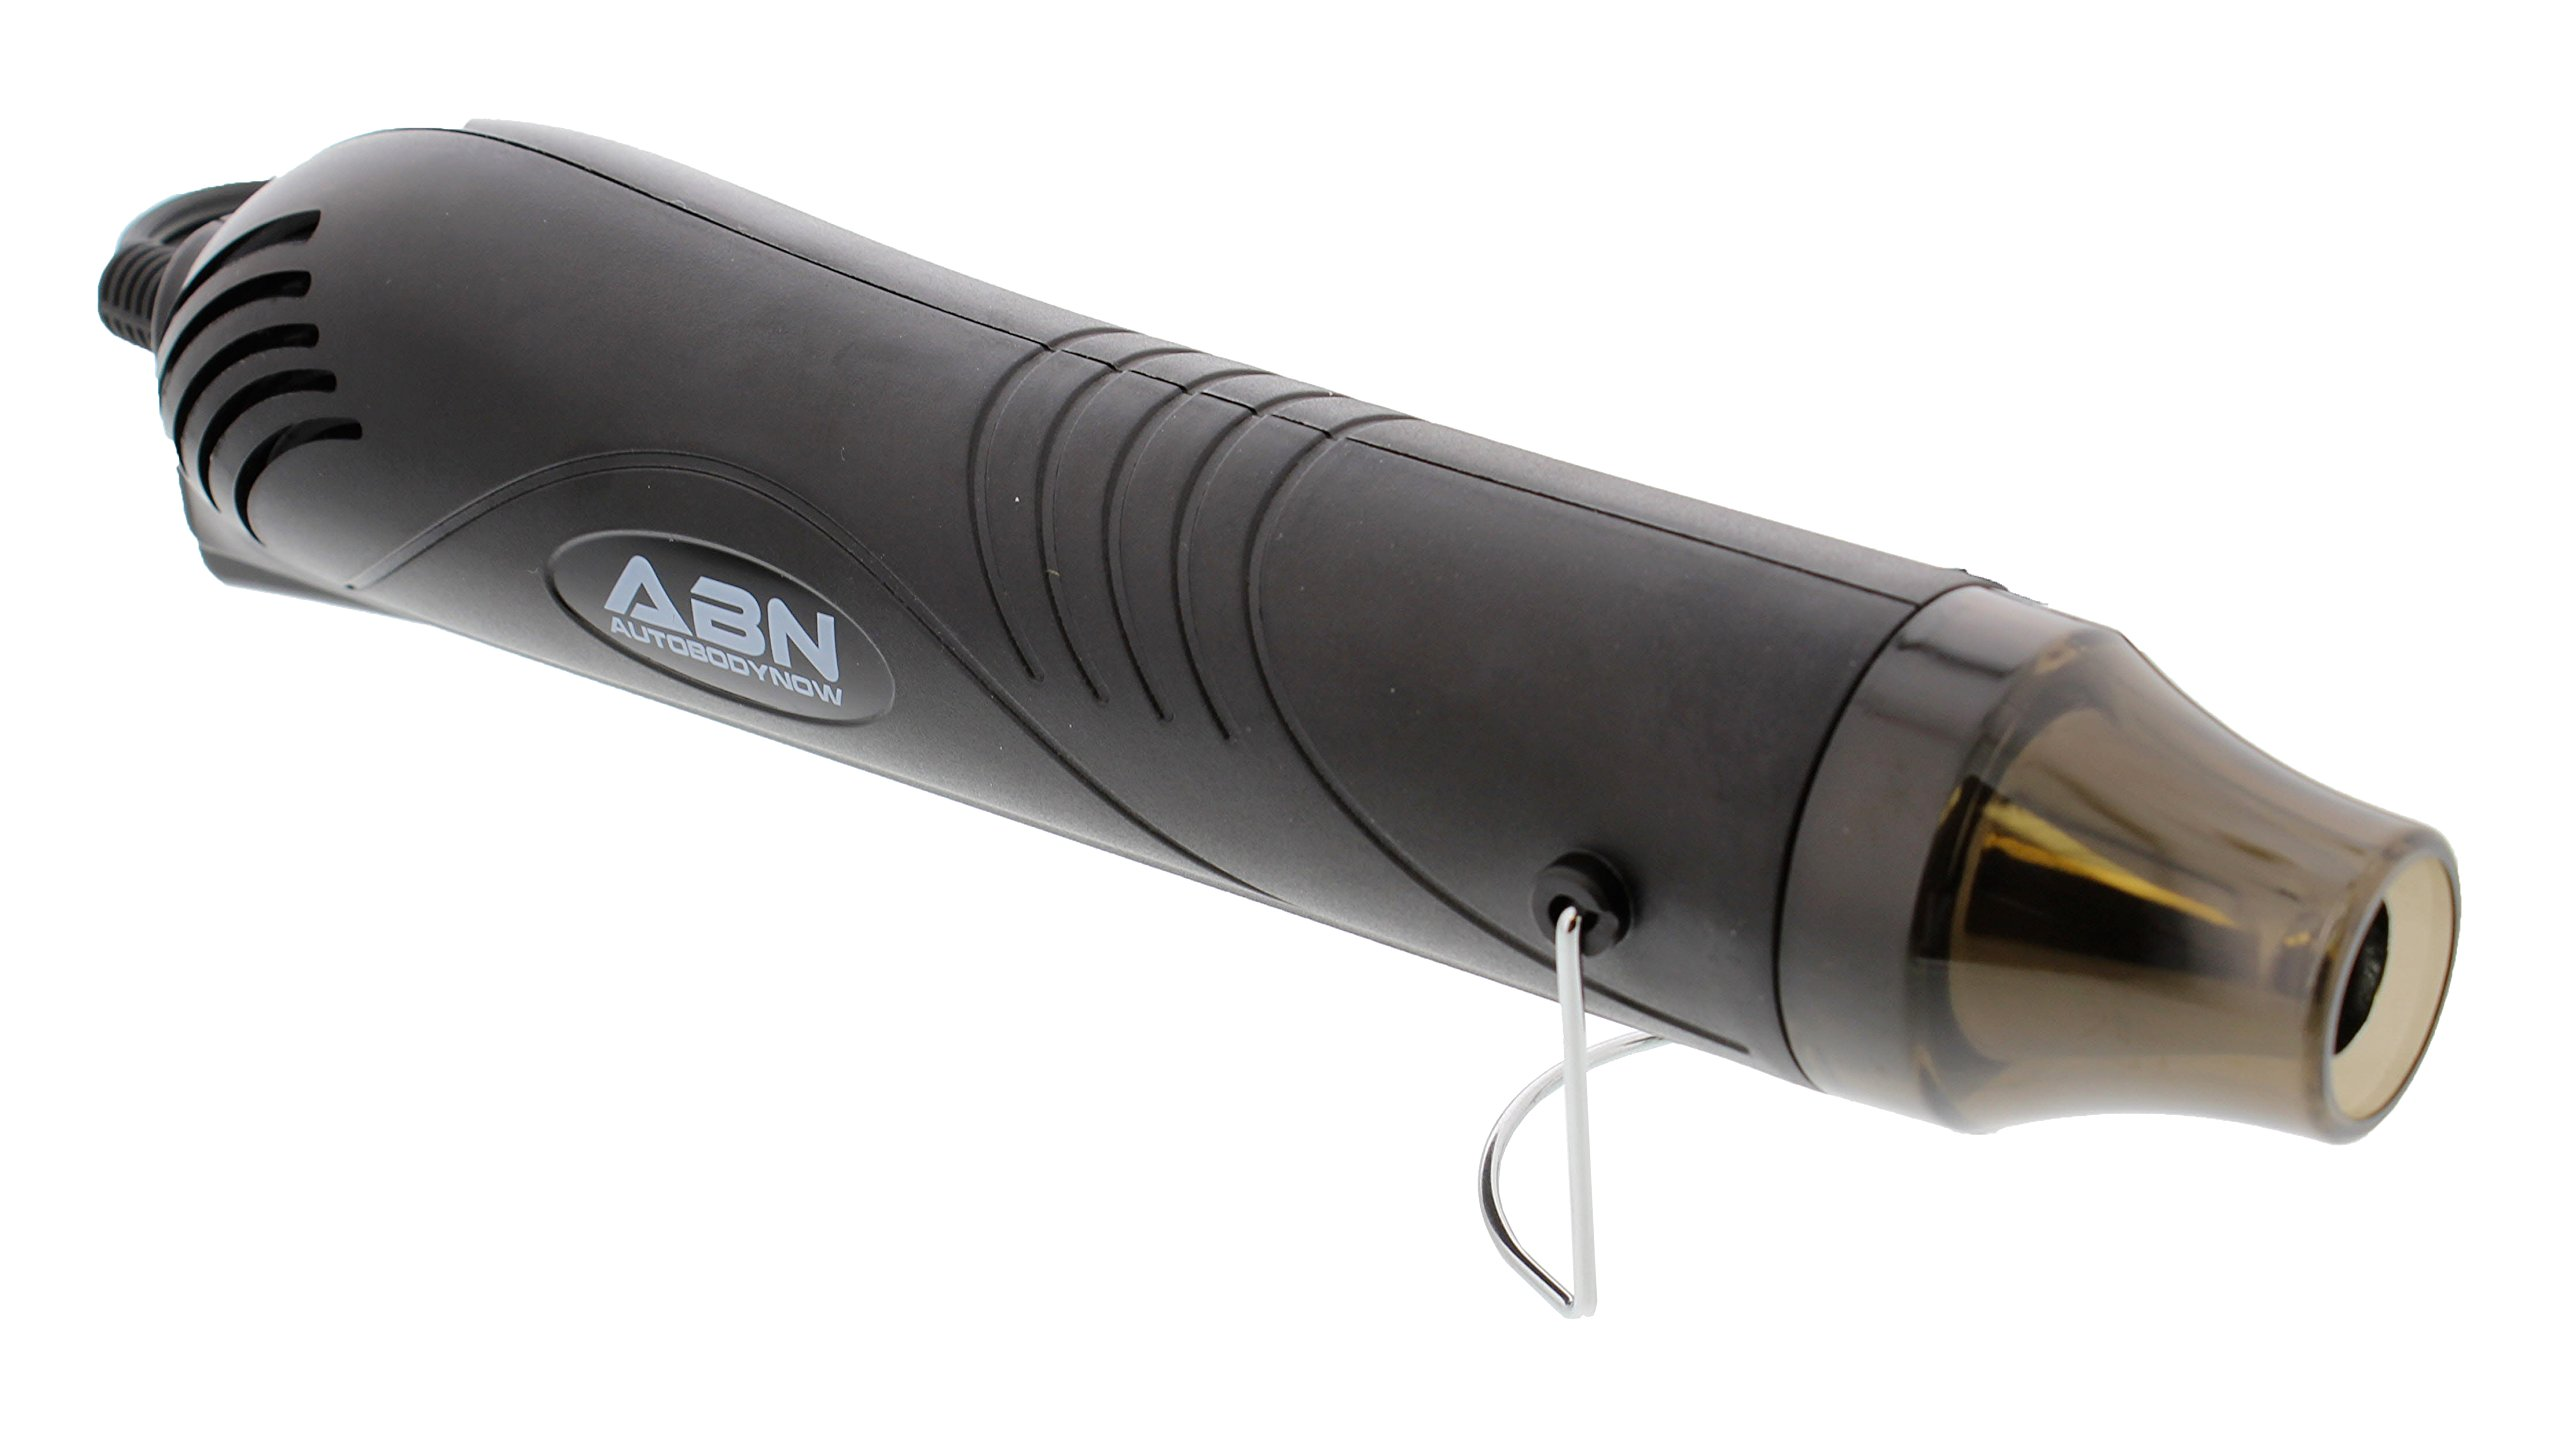 ABN Mini Heat Gun - Great for Heat Shrink Tubings and Drying - 120V, 60Hz, 300W by ABN (Image #5)